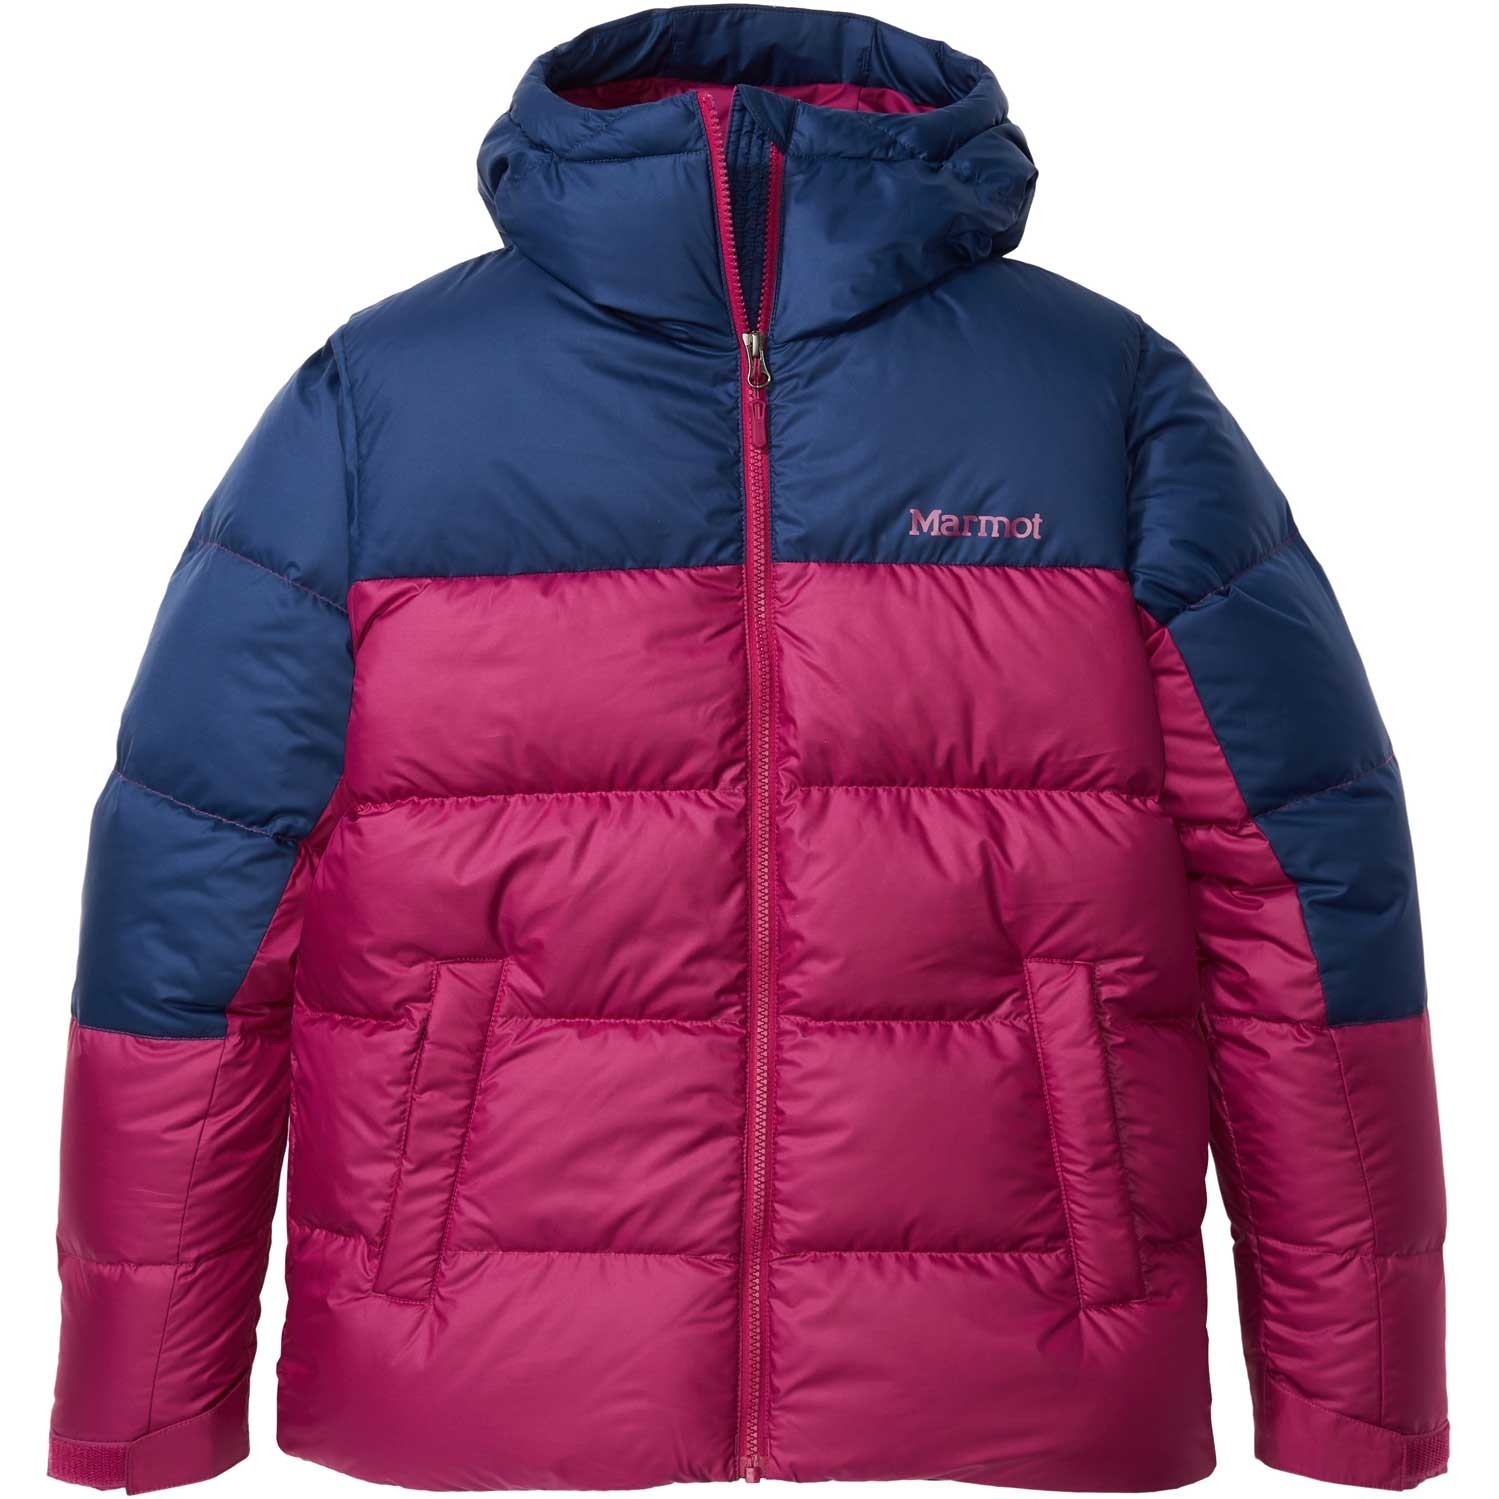 Marmot Guide Down Hoody - Women's - Wild Rose/Arctic Navy